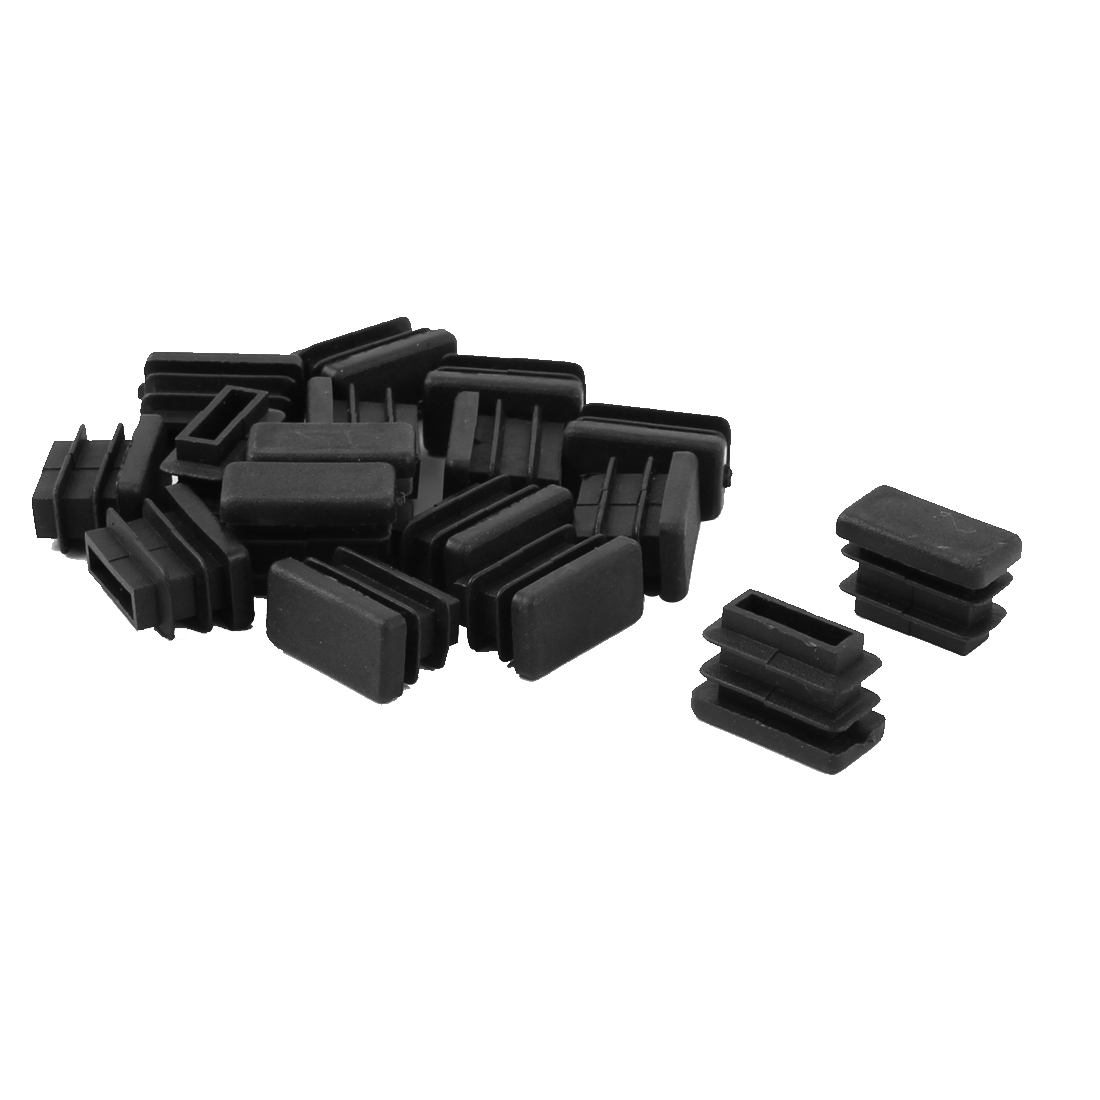 Plastic Rectangle Tube Inserts Furniture Glides End Blanking Caps Black 16pcs